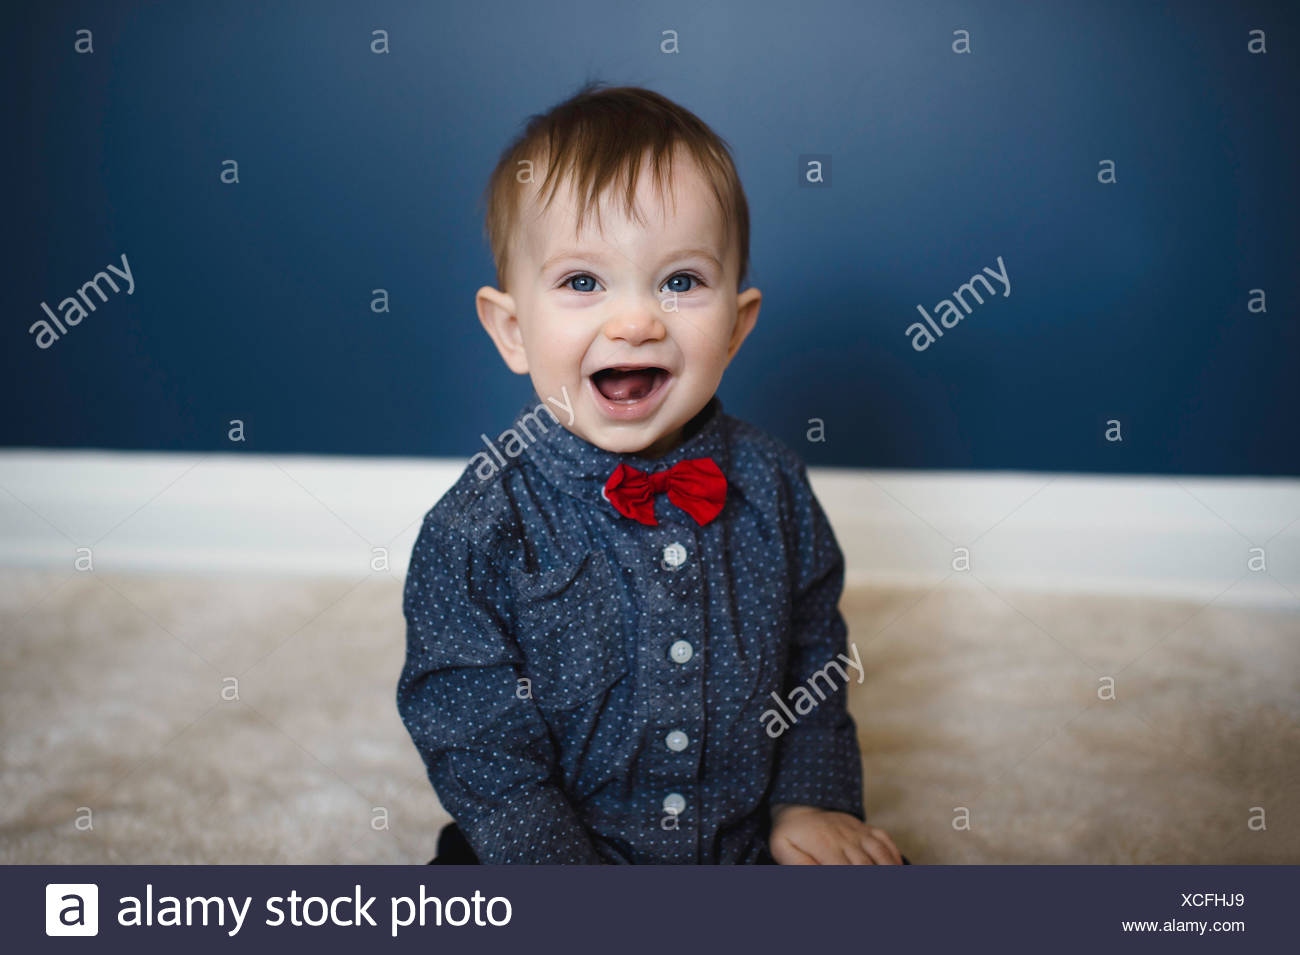 Portrait of male toddler in red bow tie sitting on floor - Stock Image